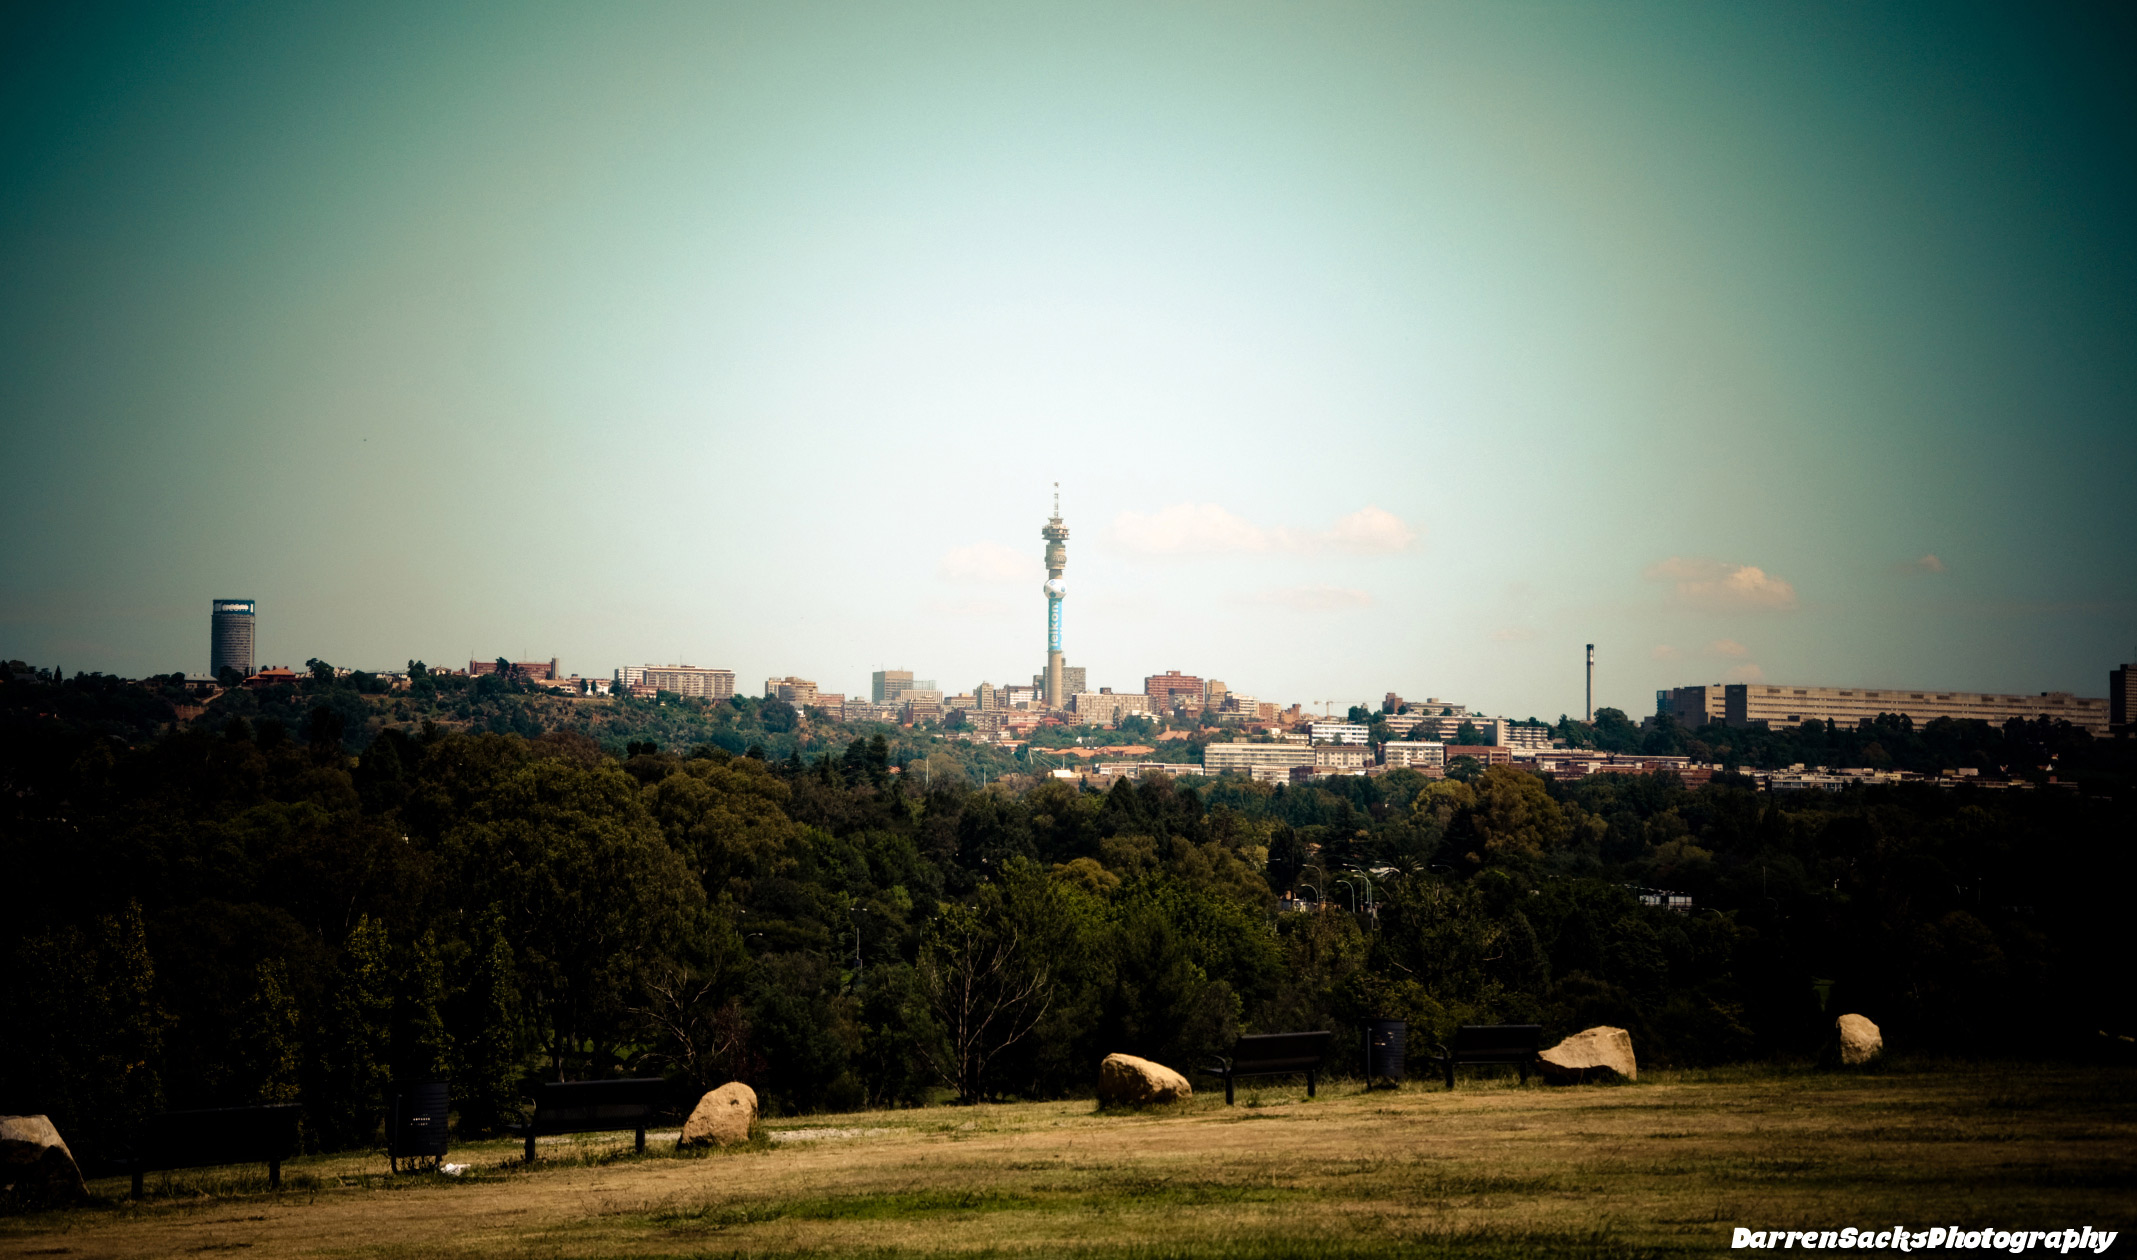 Things to do in Johannesburg on a Budget Johannesburg skyline with Hillbrow Tower in the centre by sacks   on Flickr